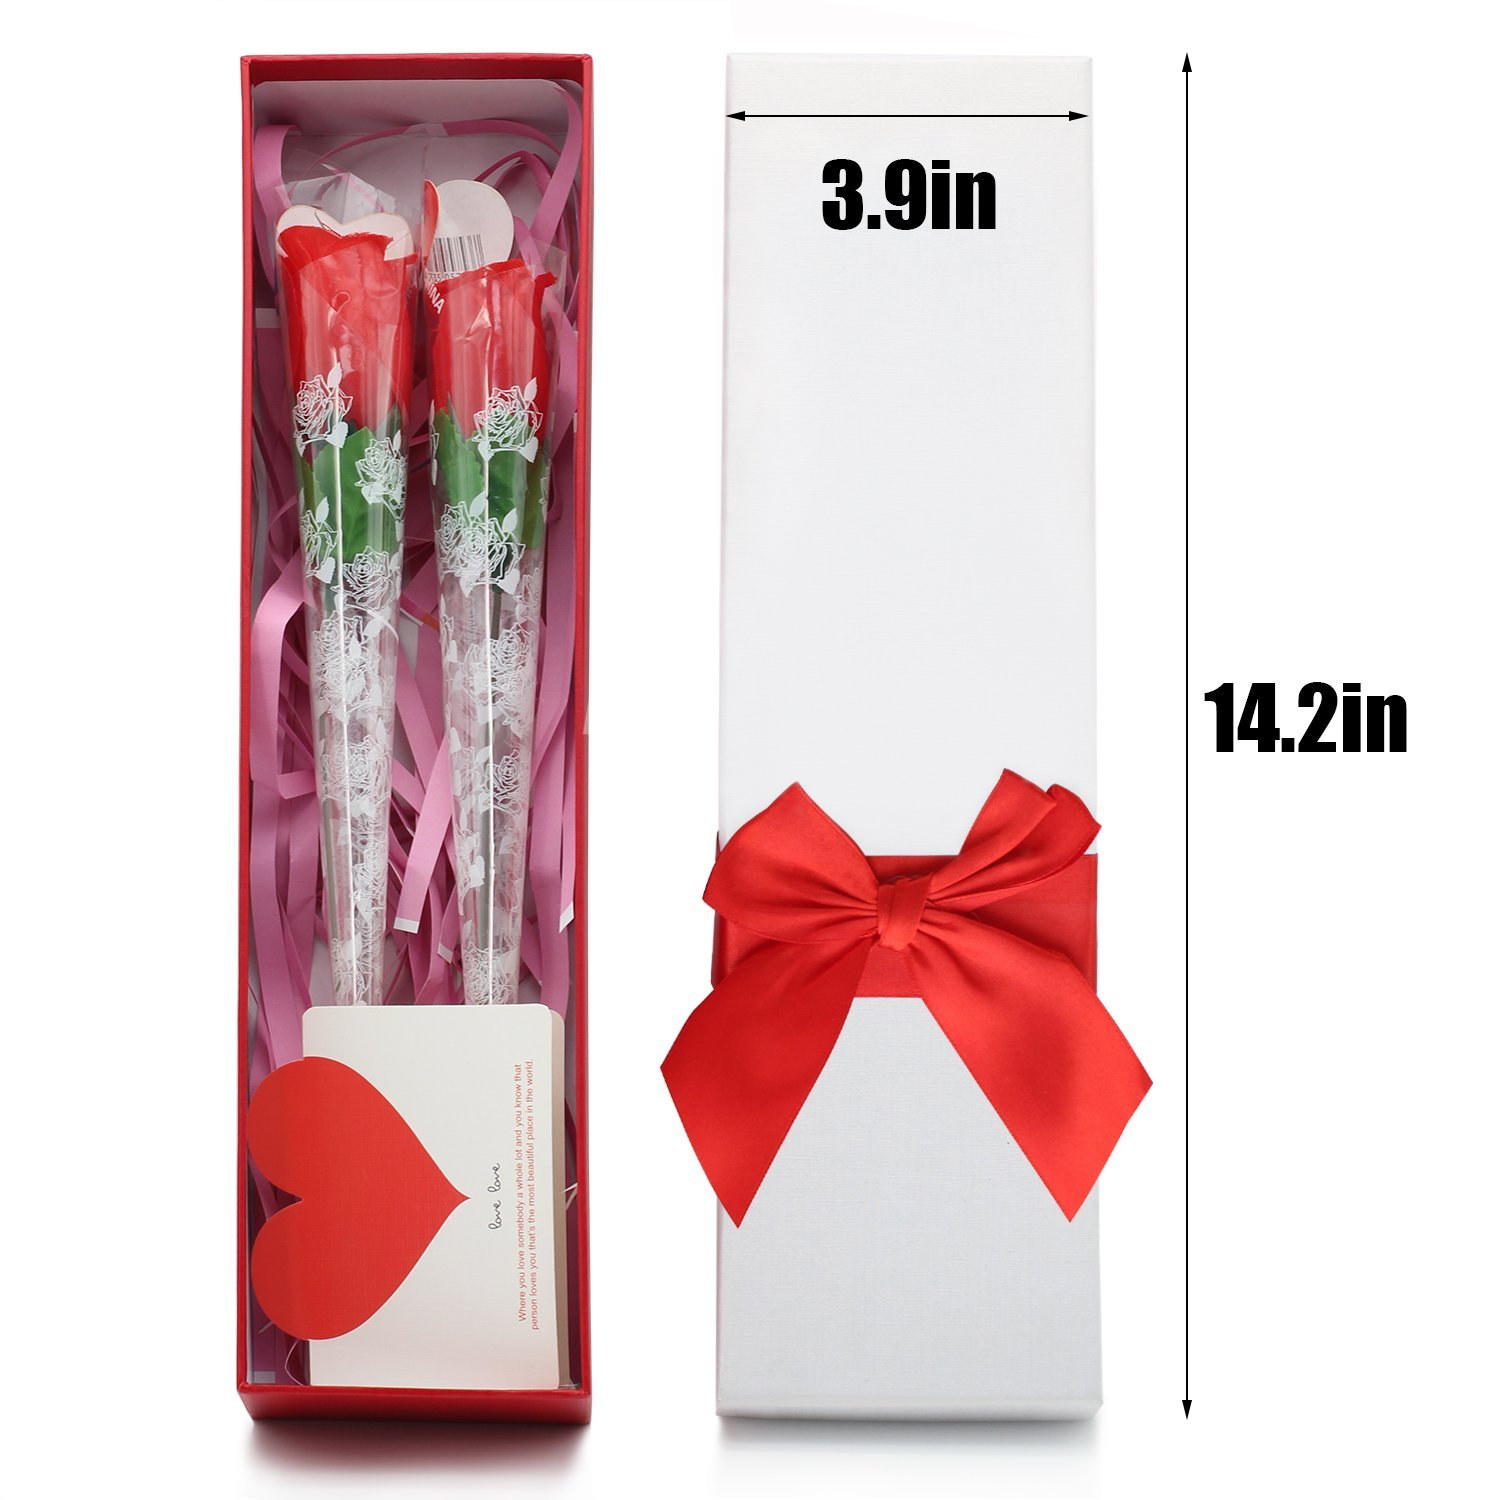 2 Pcs Creative Red Rose Shape Thong Sexy Undewear Women's Sexy Panties G-String with Gift Box Ideal Valentine's Day&Birthday Gift for Her-Random Style